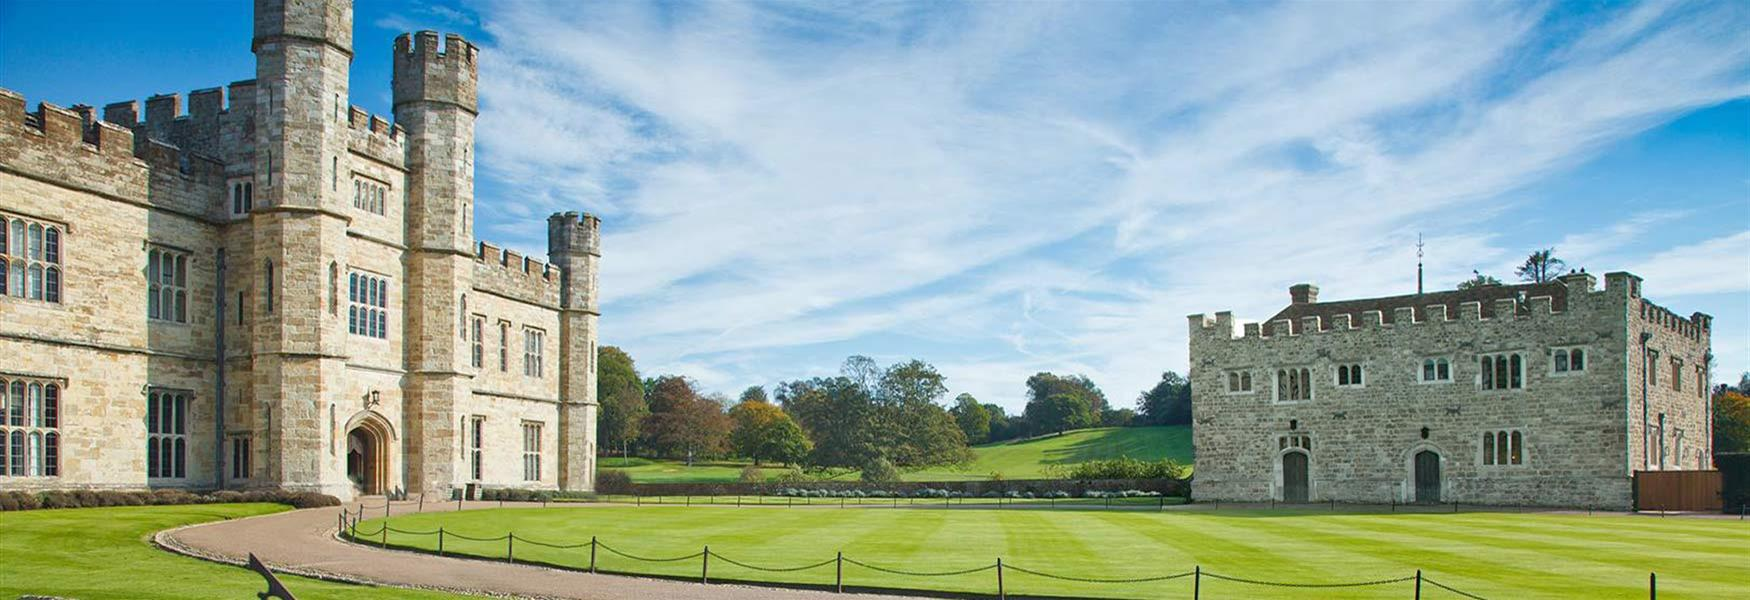 Discover history at Leeds Castle